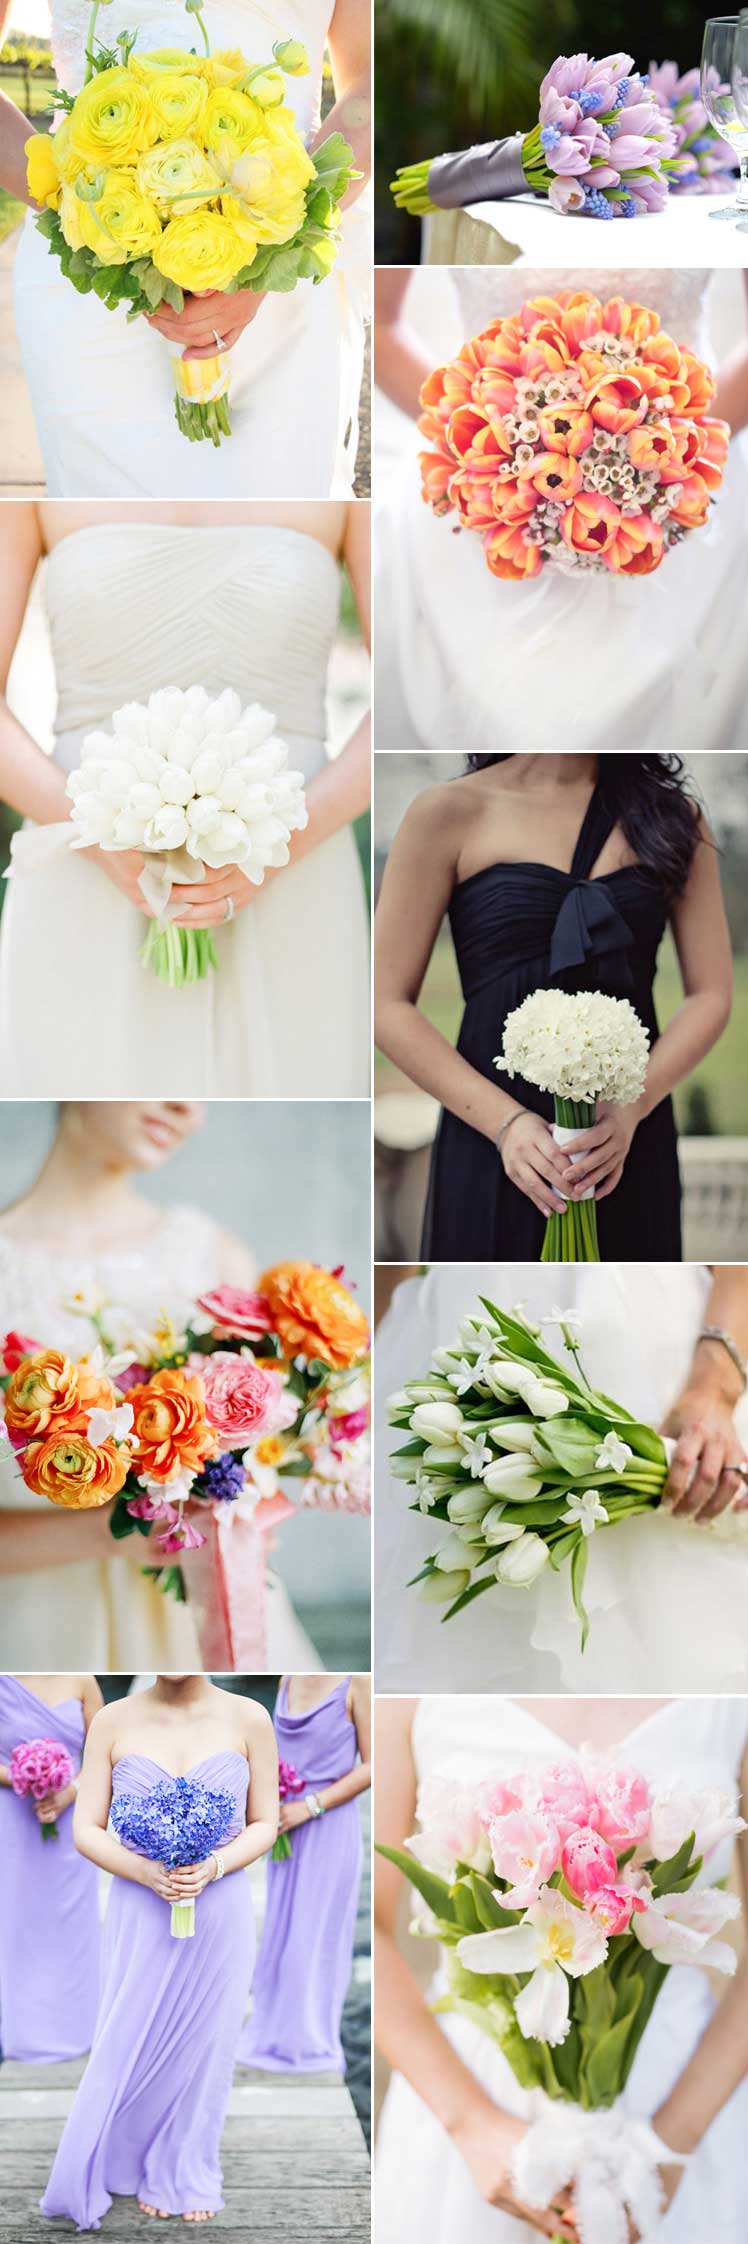 beautiful spring wedding bouquets